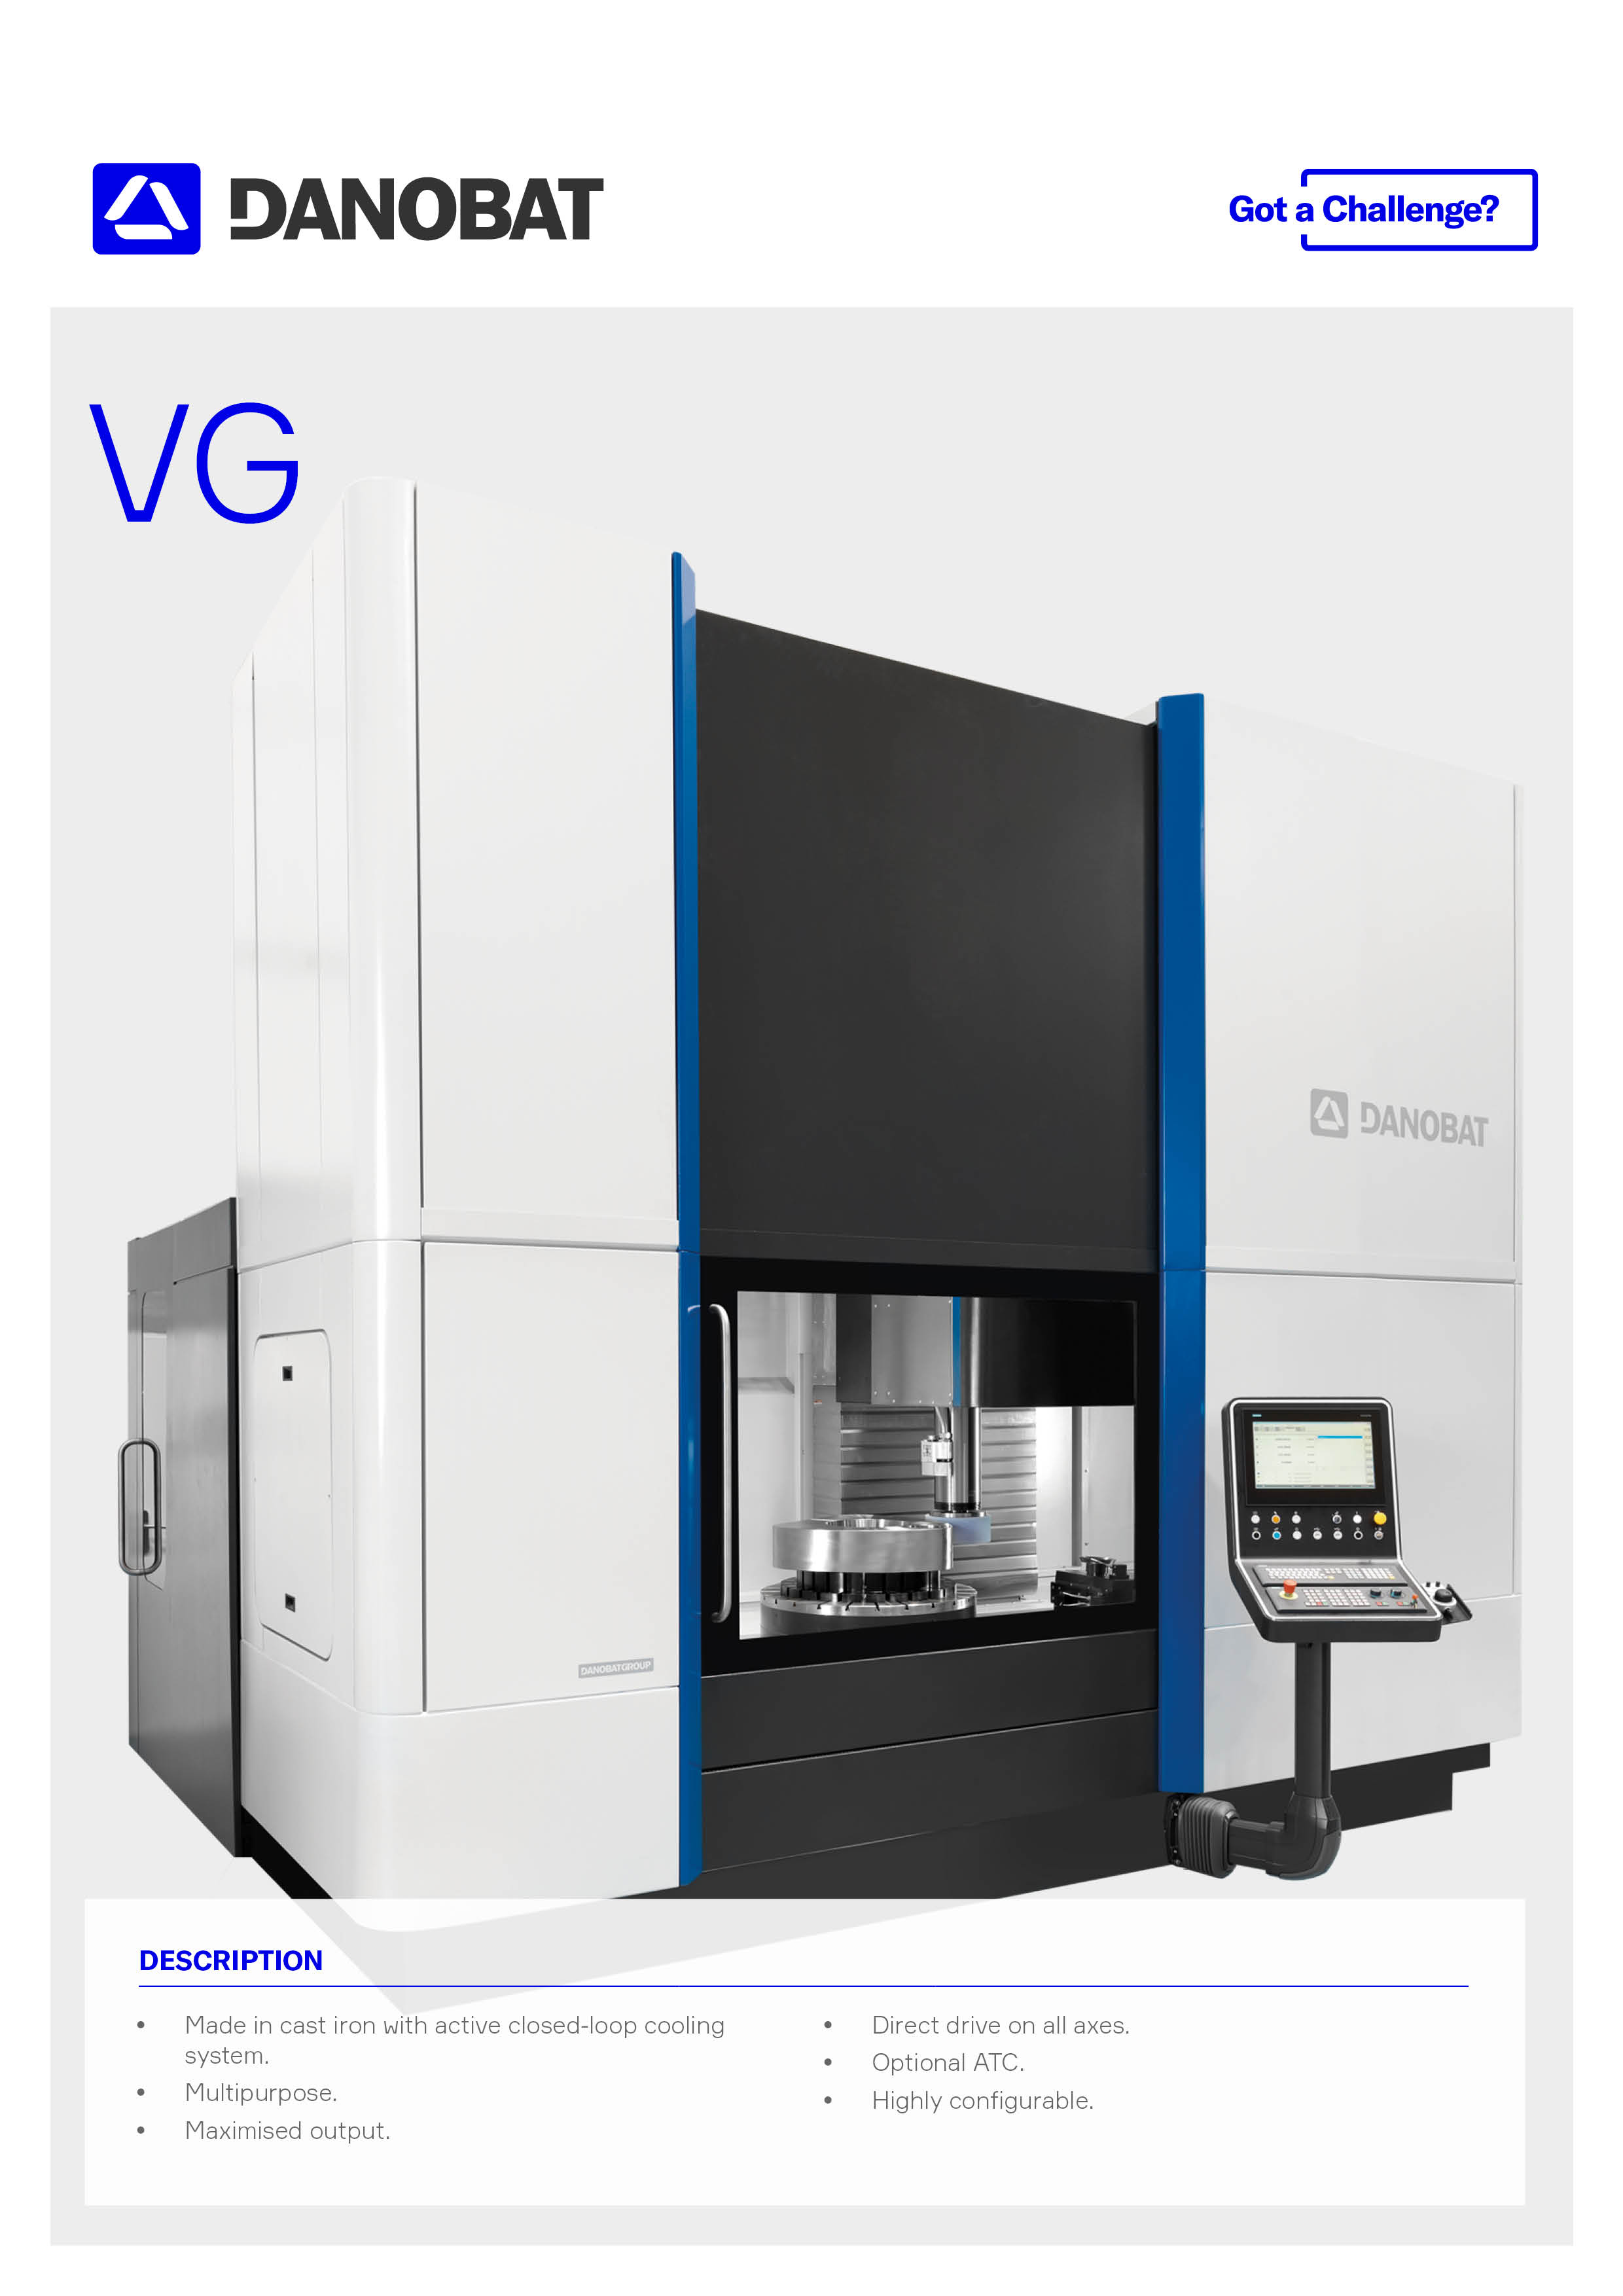 Vertical grinding and measuring solution